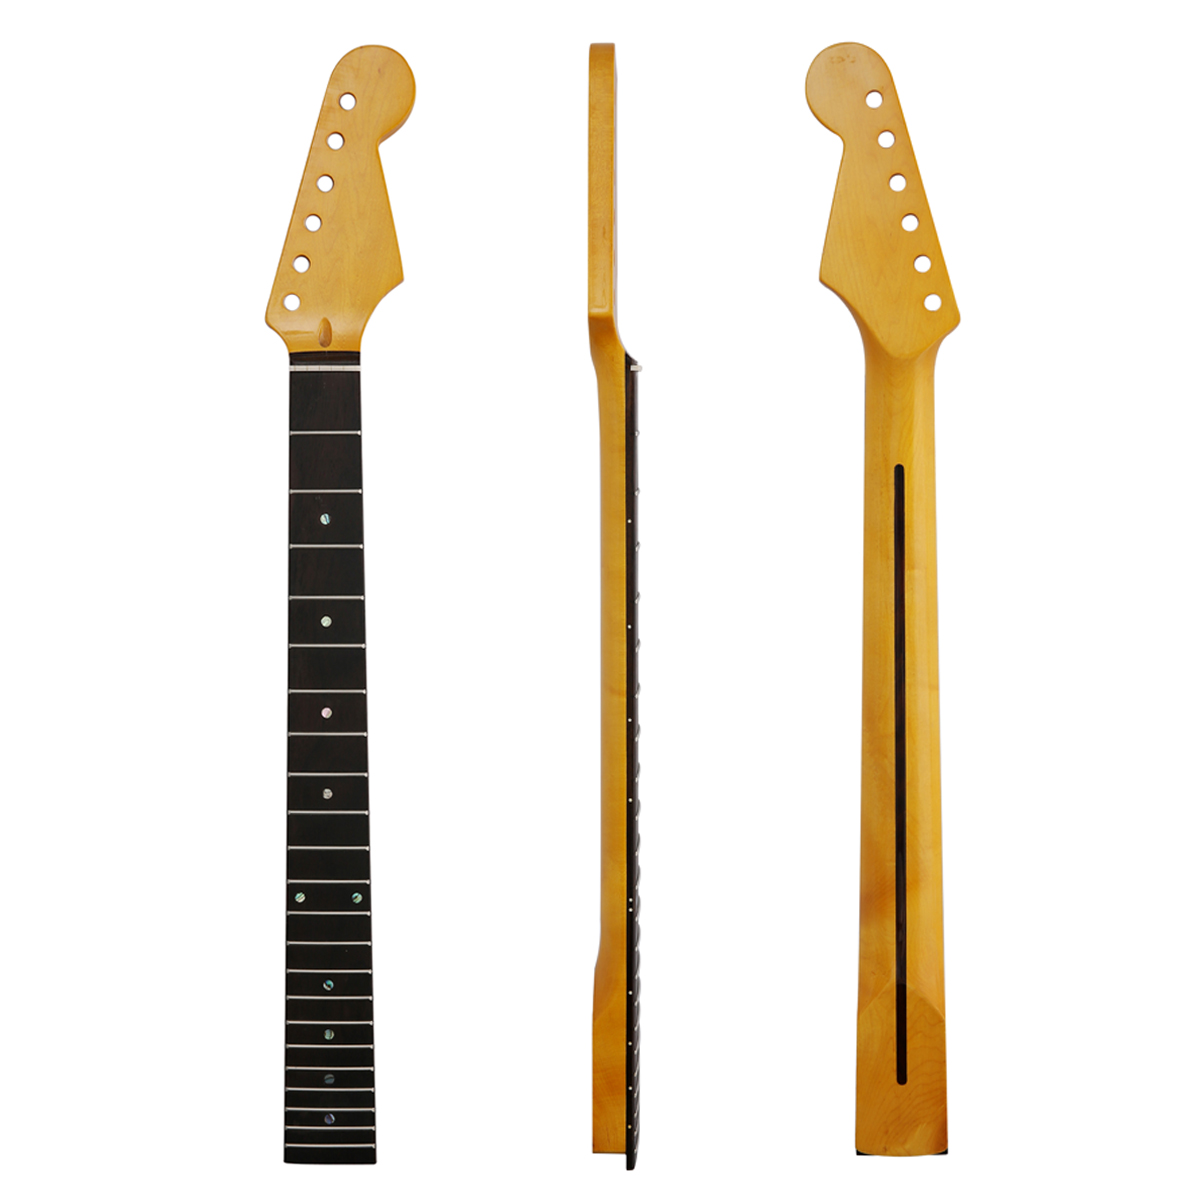 KAISH 22 Fret ST Strat Canadian Maple Guitar Neck with Rosewood Fingerboard Abalone Inlay and Bone